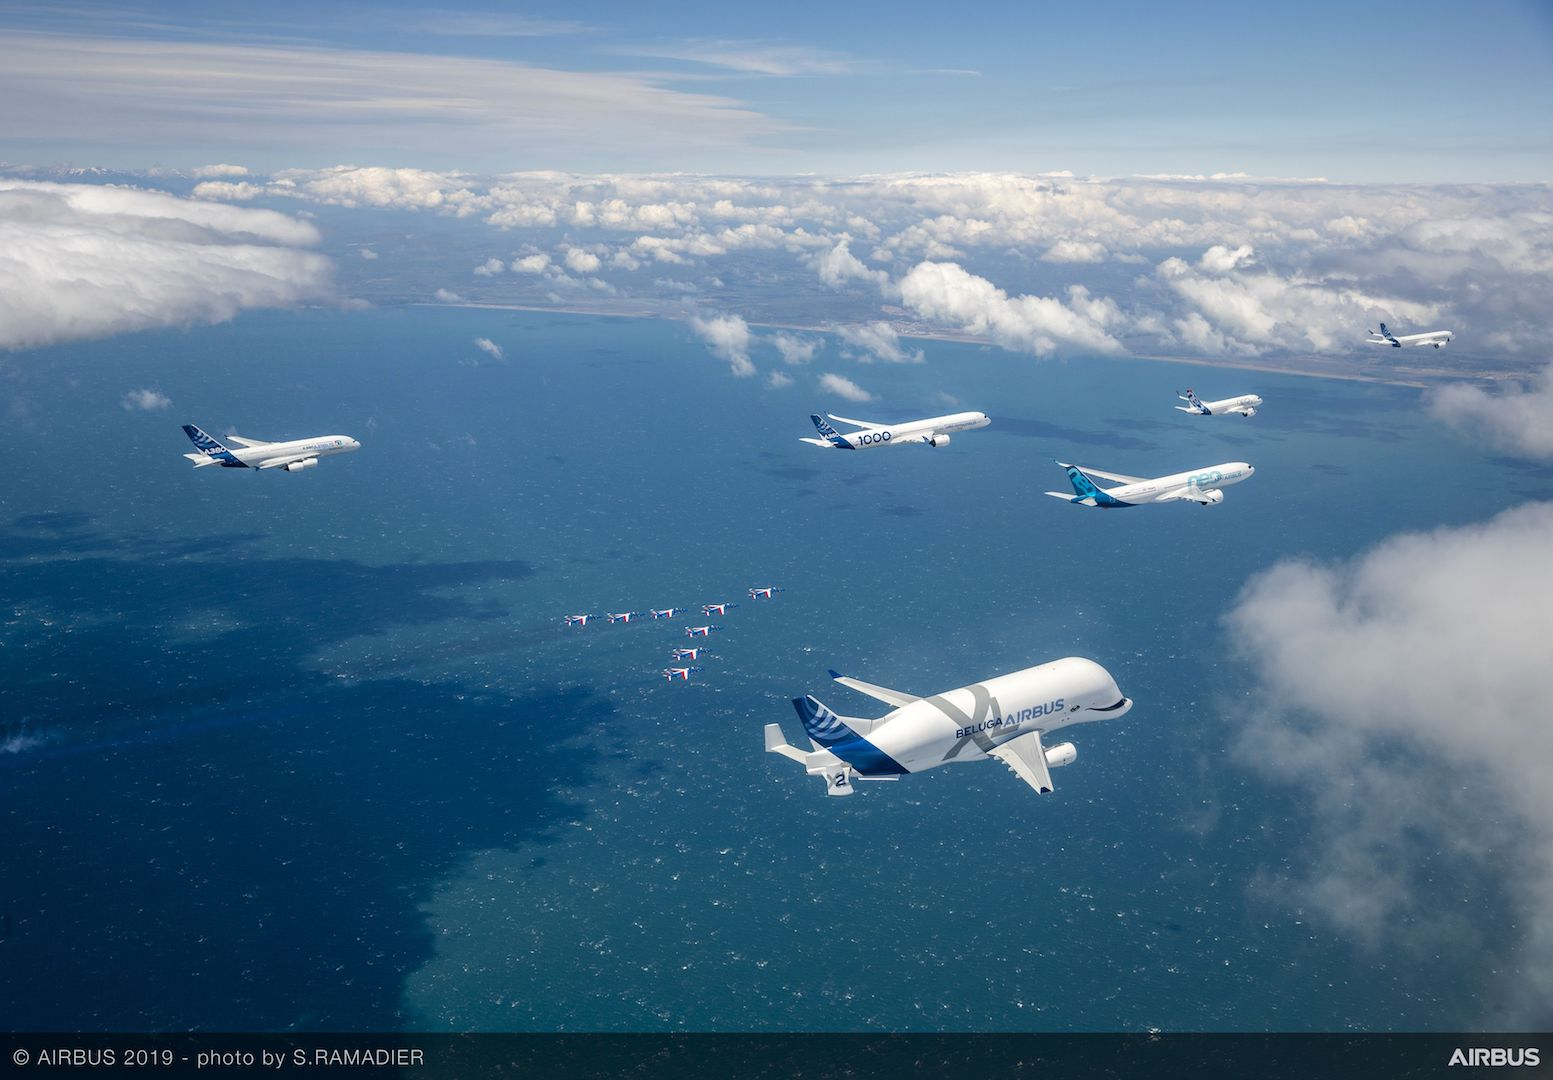 Airbus50 Formation from Above